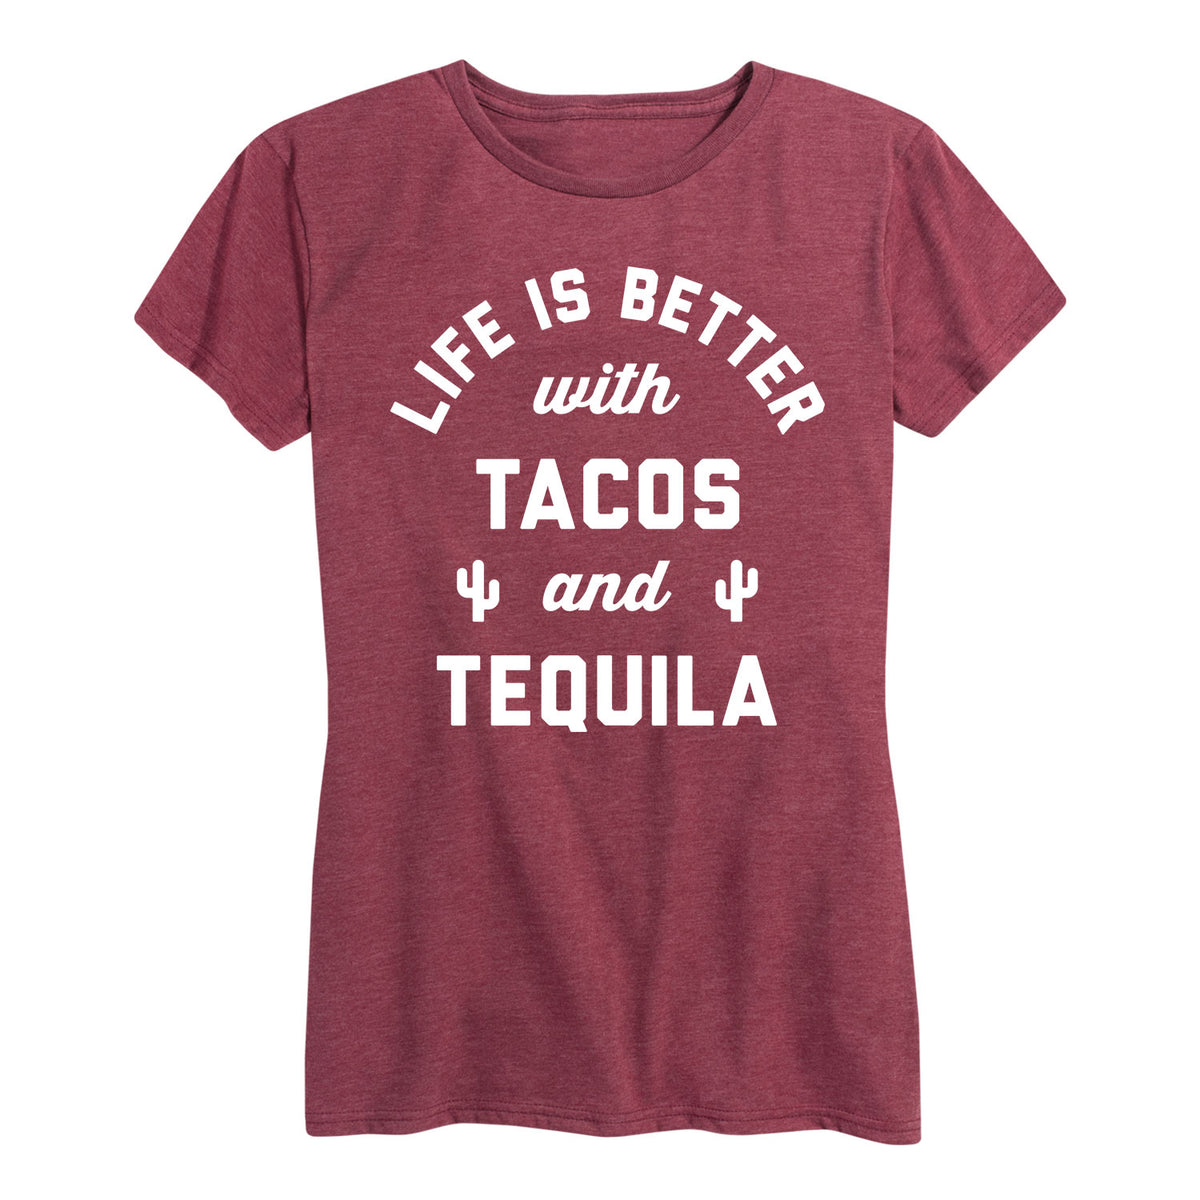 Life Is Better With Tacos And Tequila - Women's Short Sleeve T-Shirt